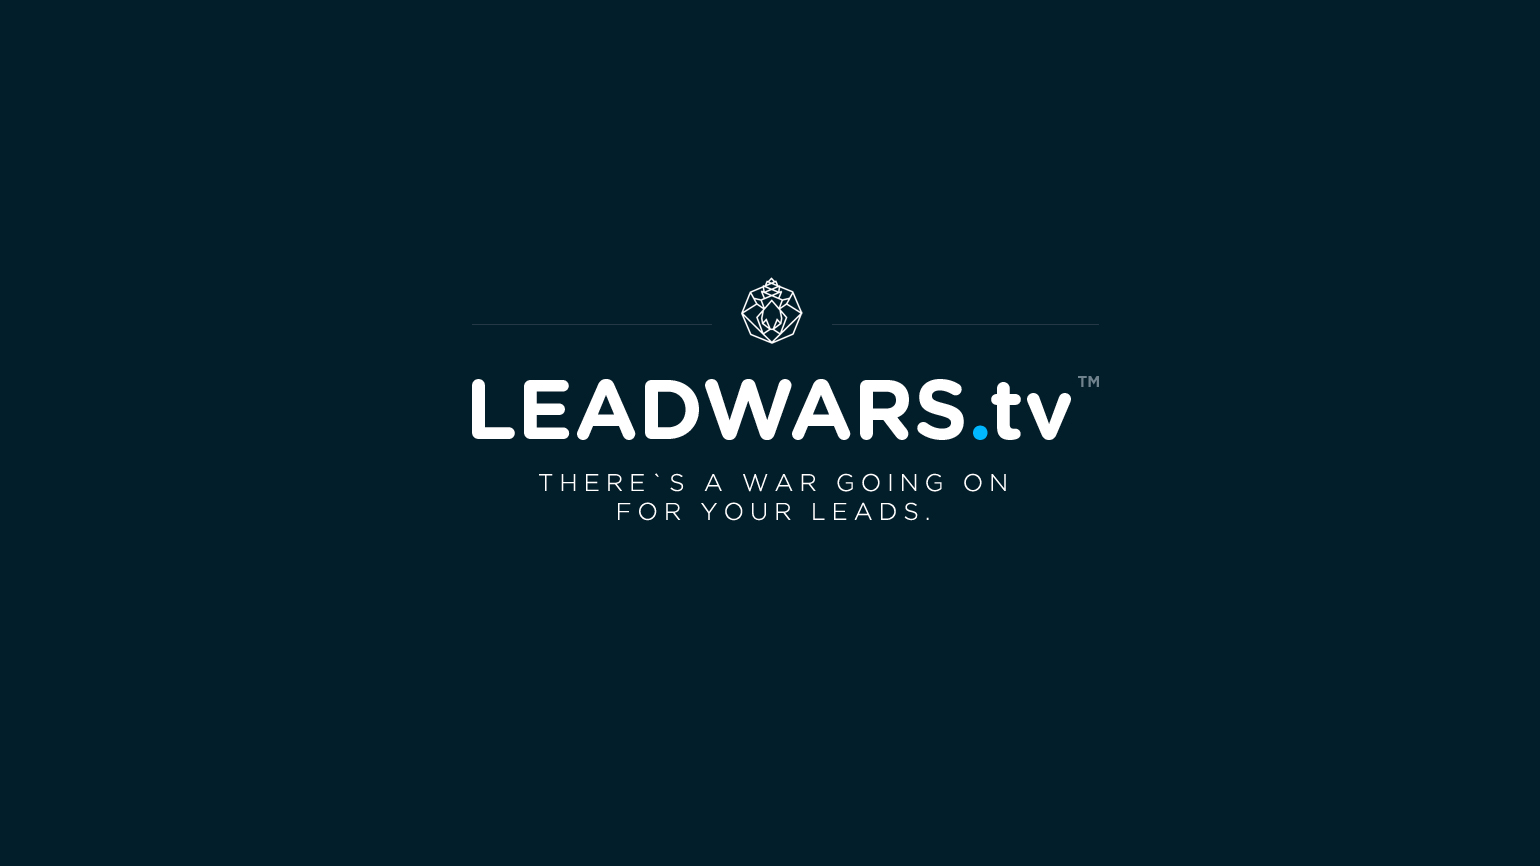 Ready to Win the Fight for Your Leads? Start Watching LeadWars.tv on YouTube